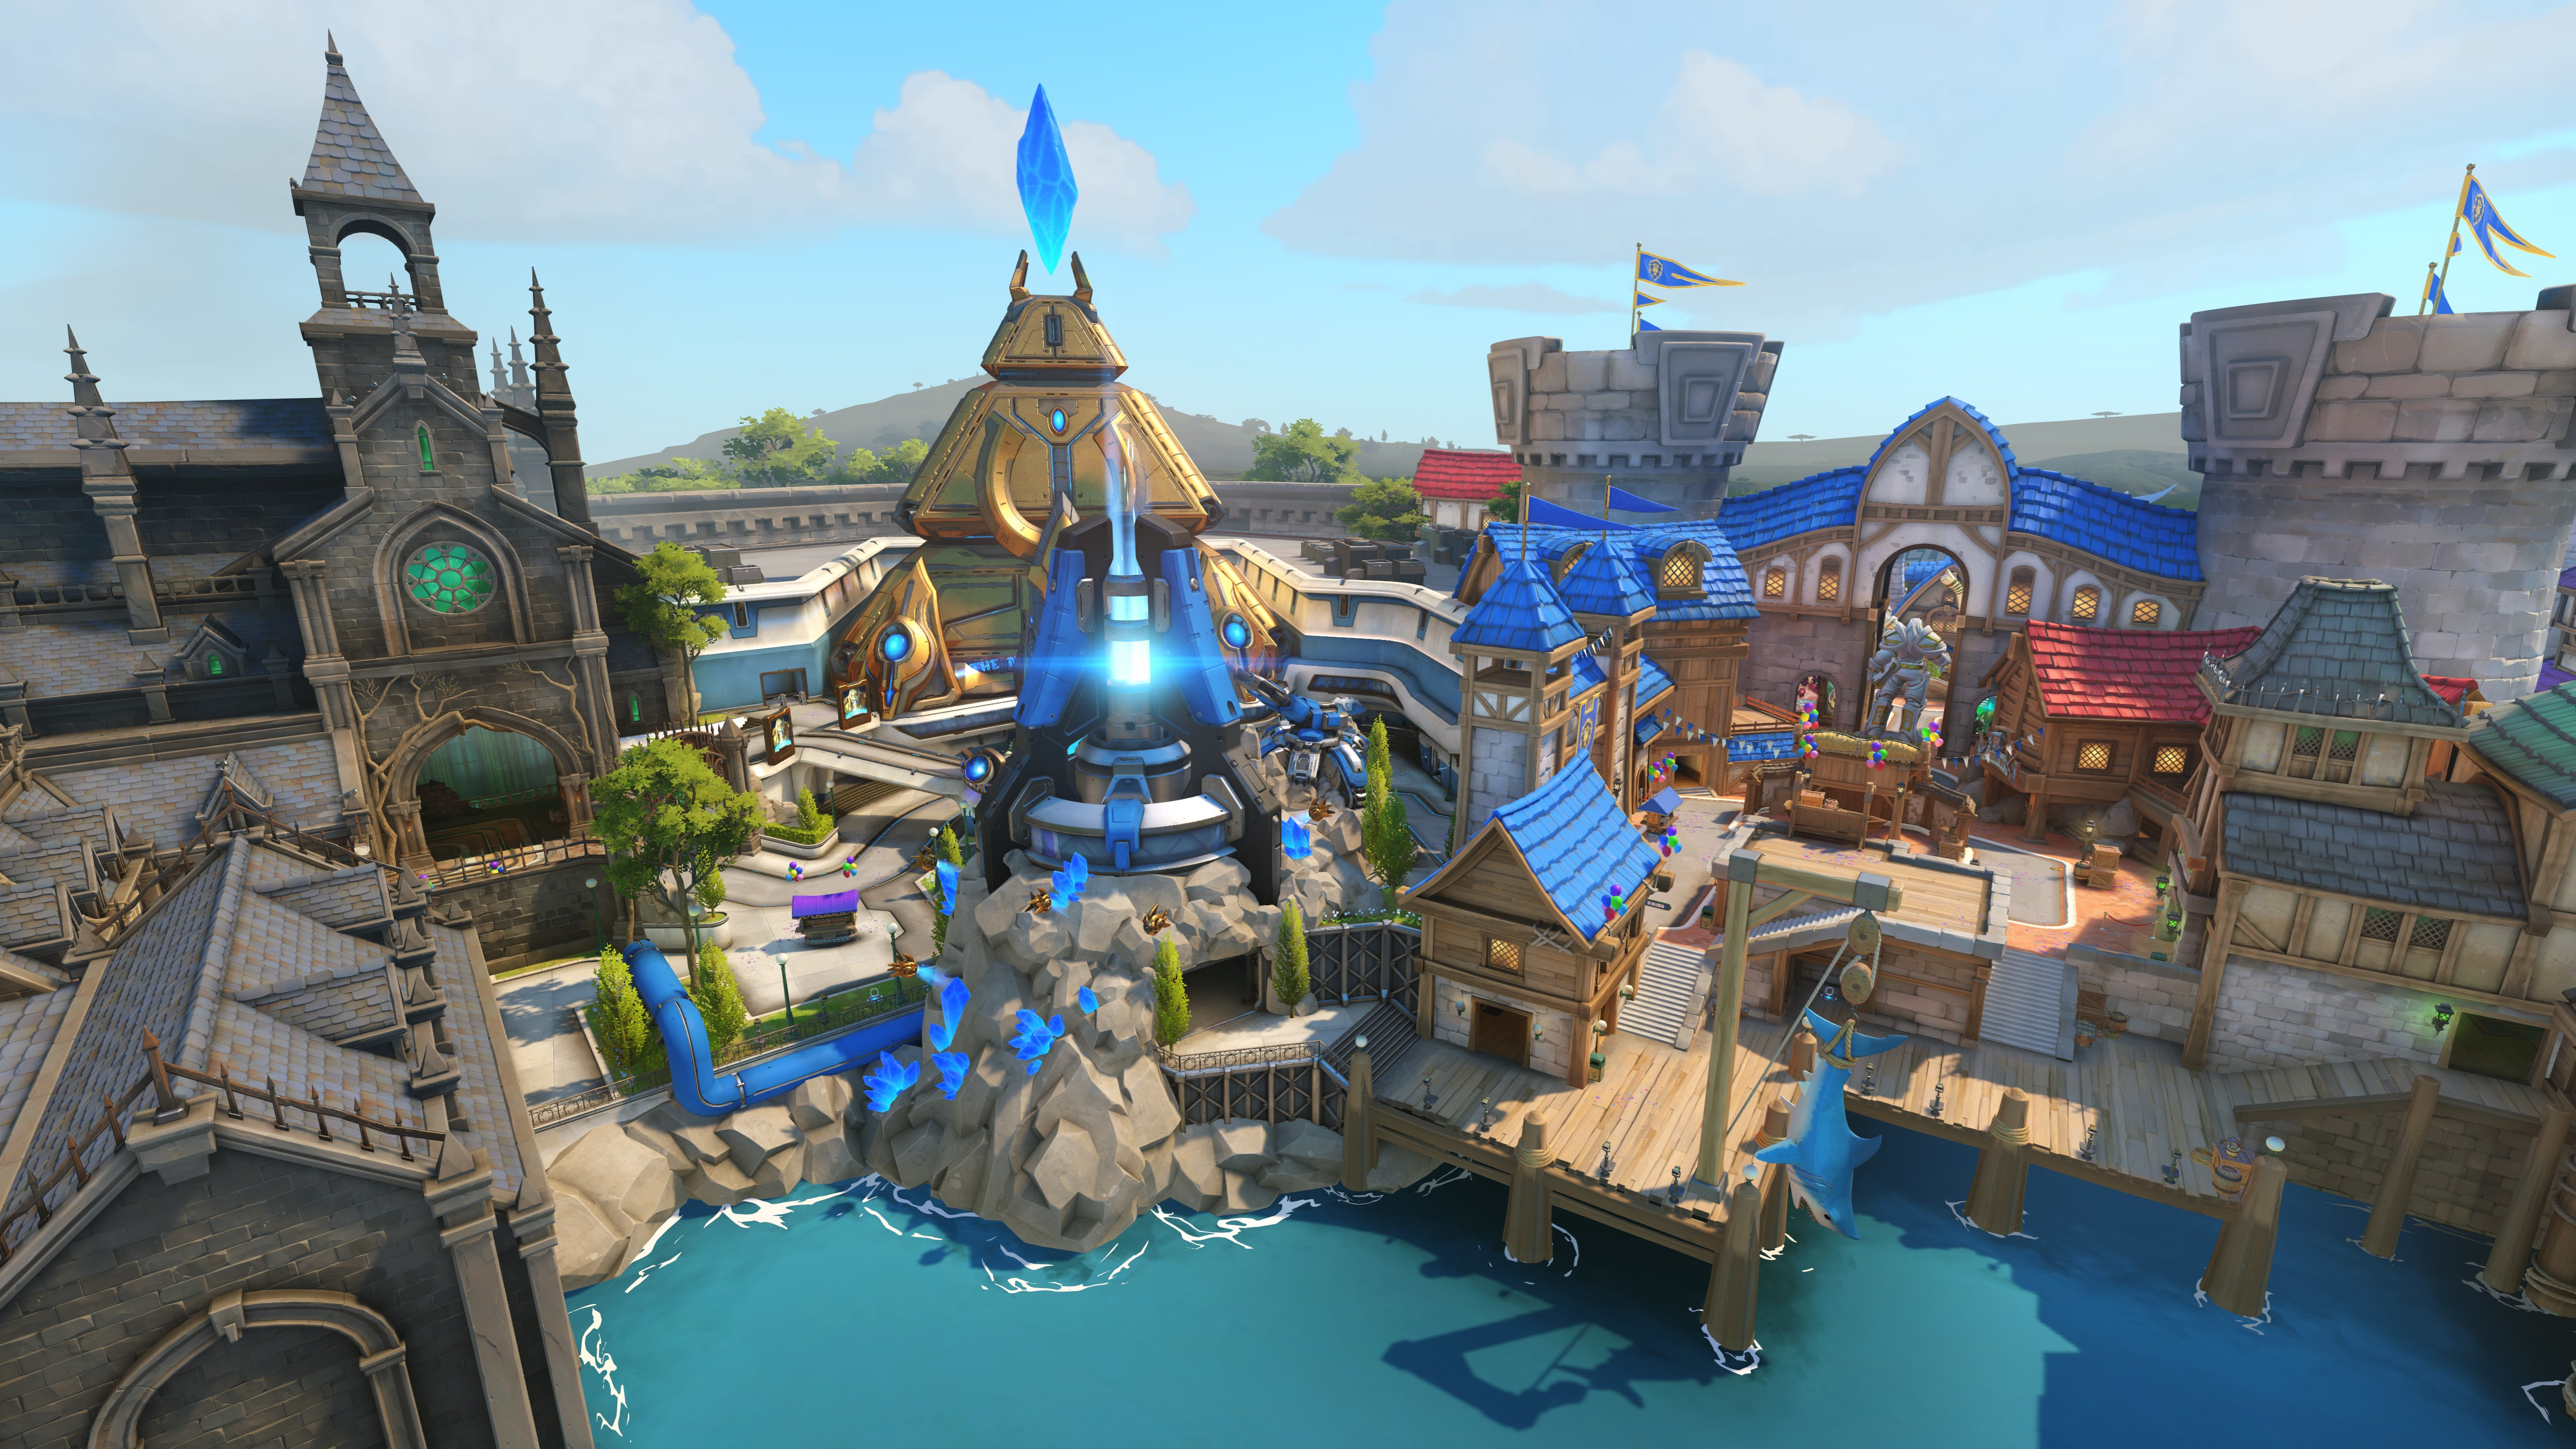 New Overwatch map is a Blizzard theme park: Blizzard World (update) - Polygon